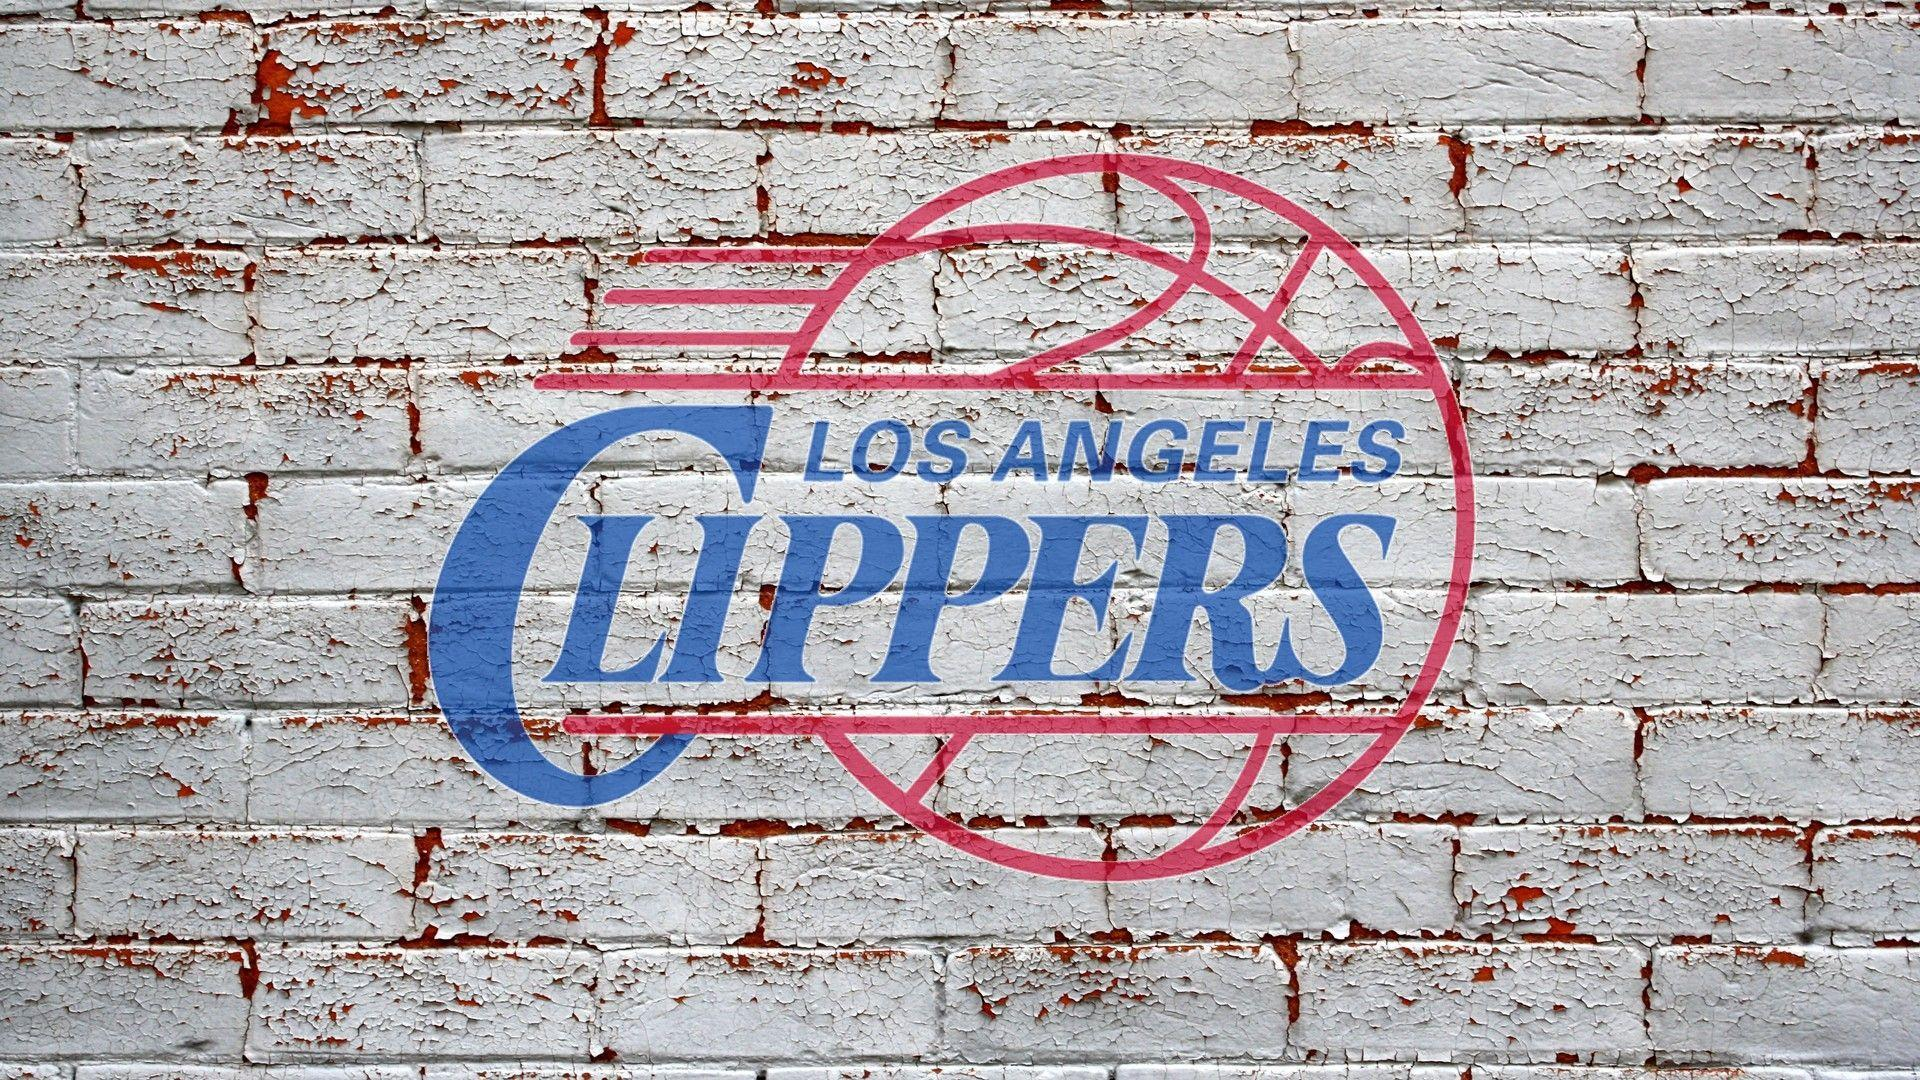 los angeles clippers wallpapers HD – wallpapermonkey